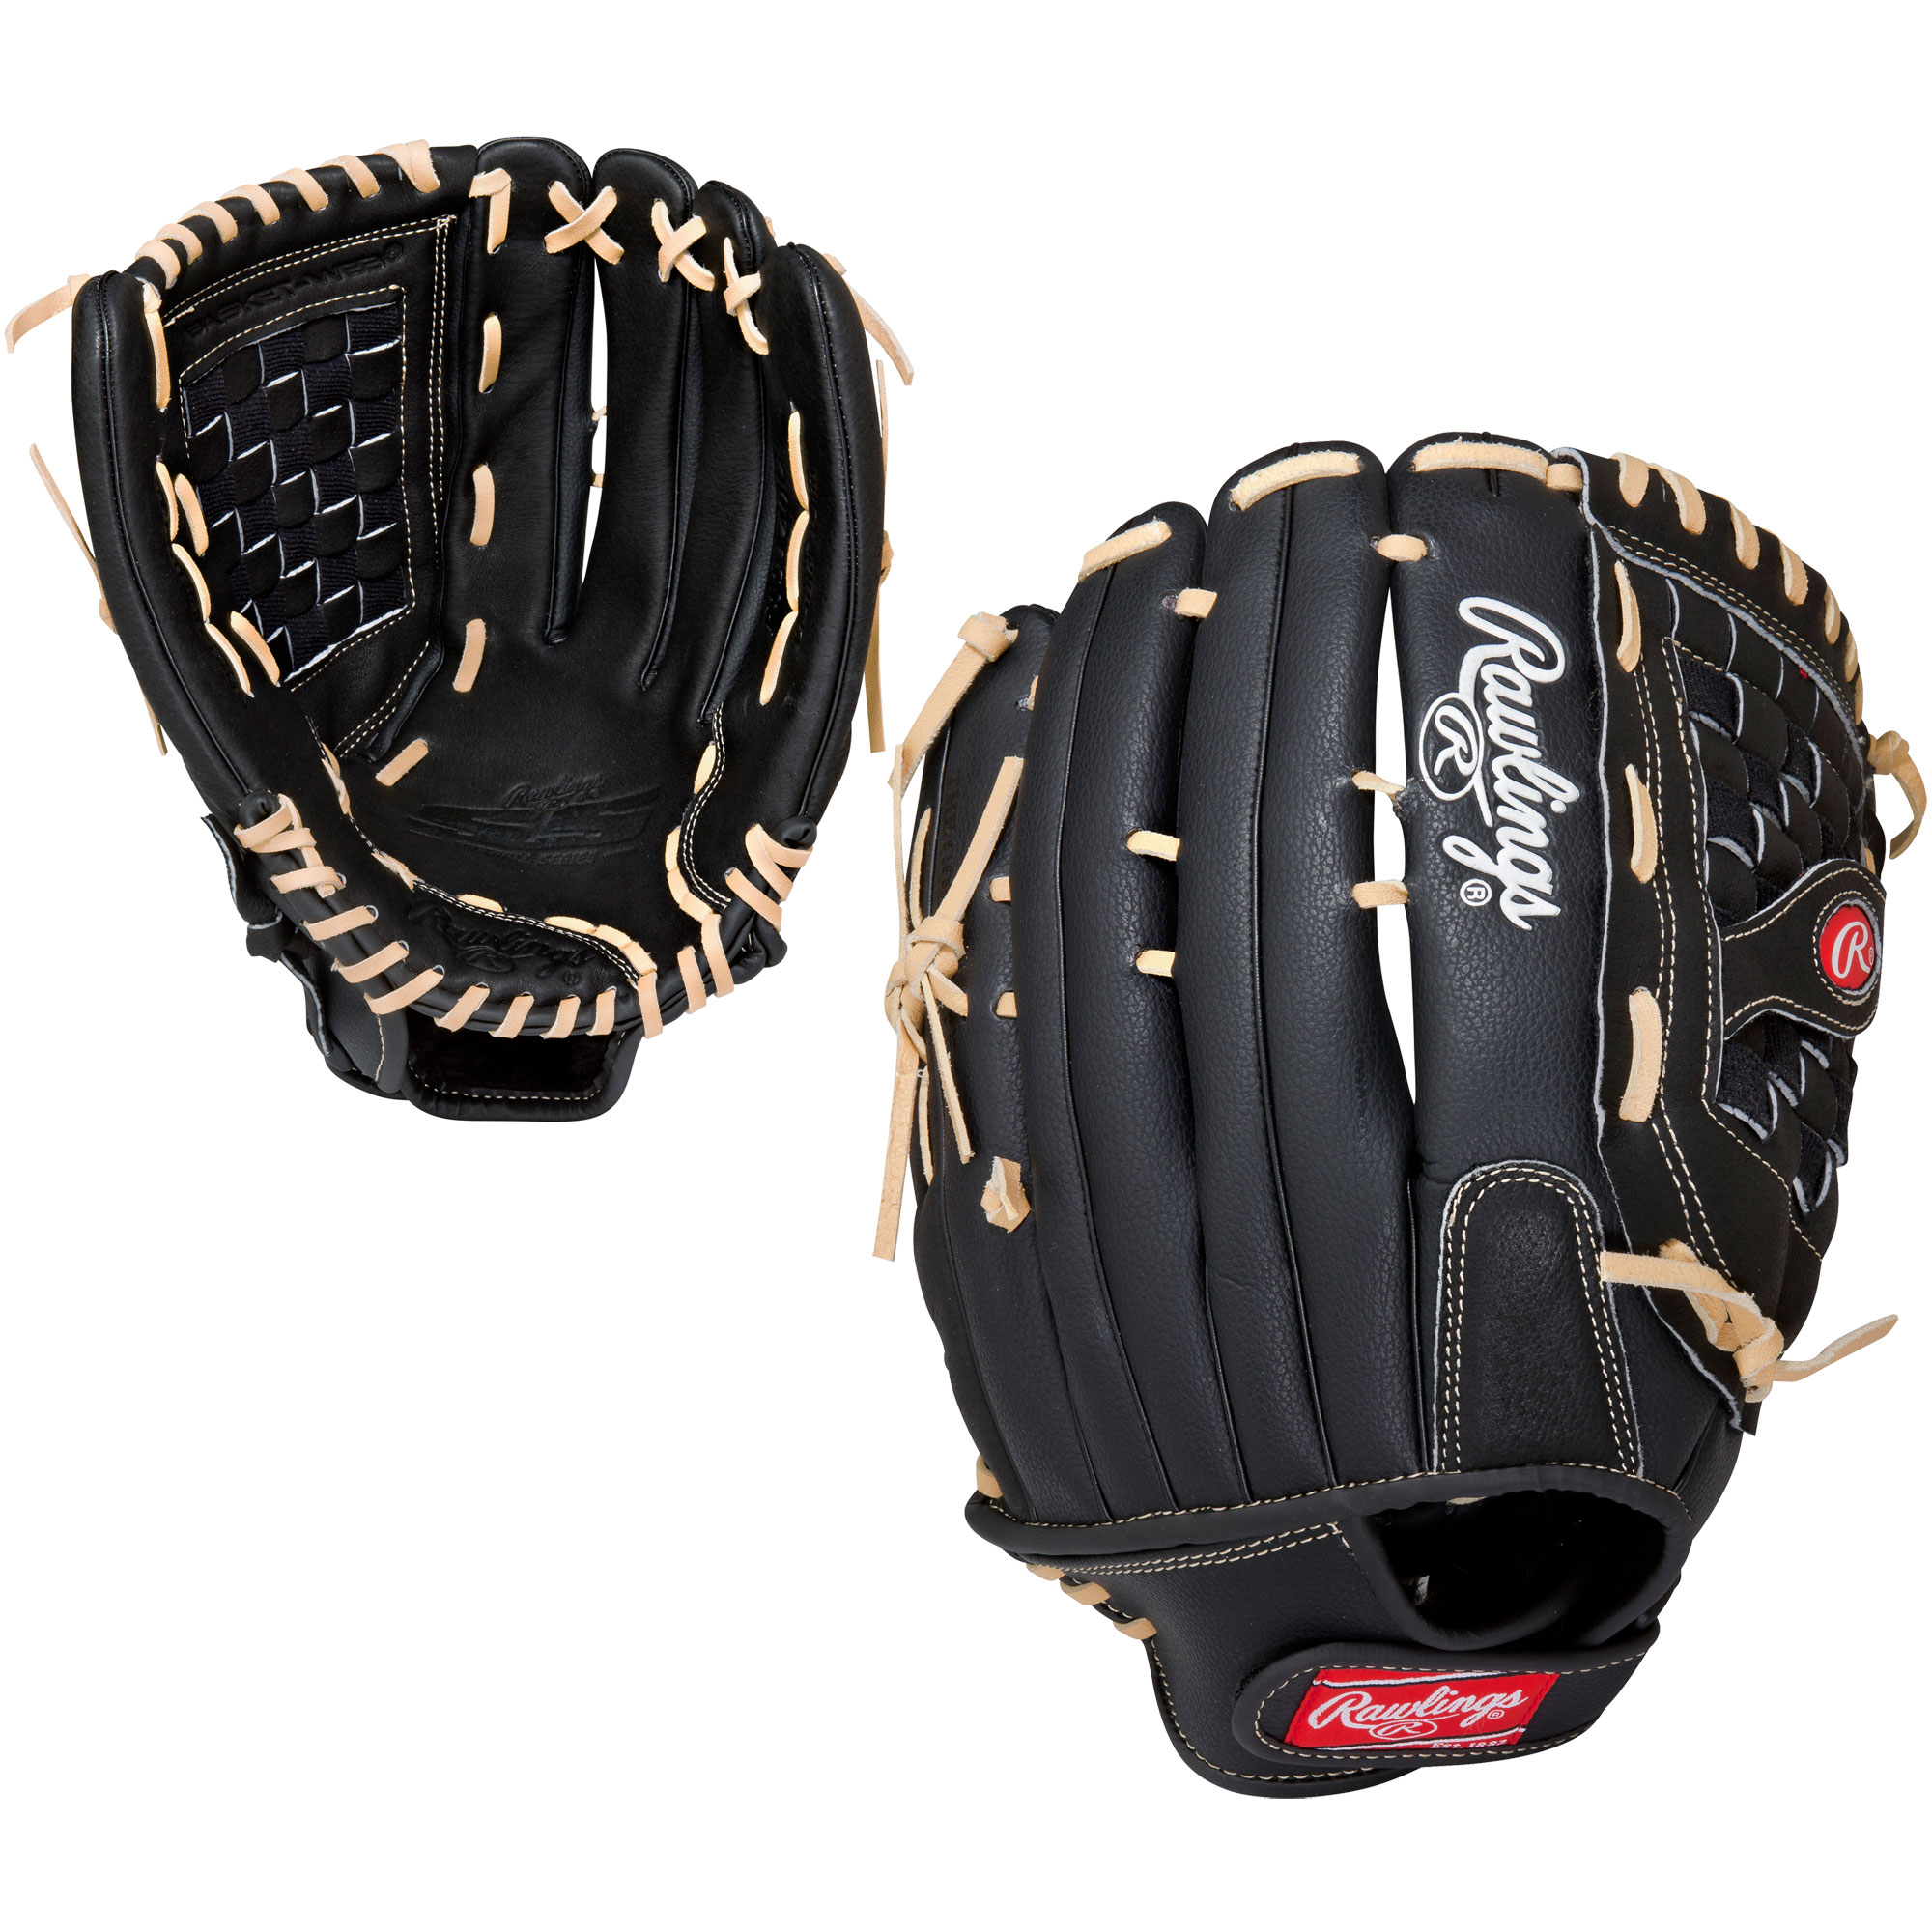 "Rawlings 14"" RSB Series Slowpitch Softball Glove"